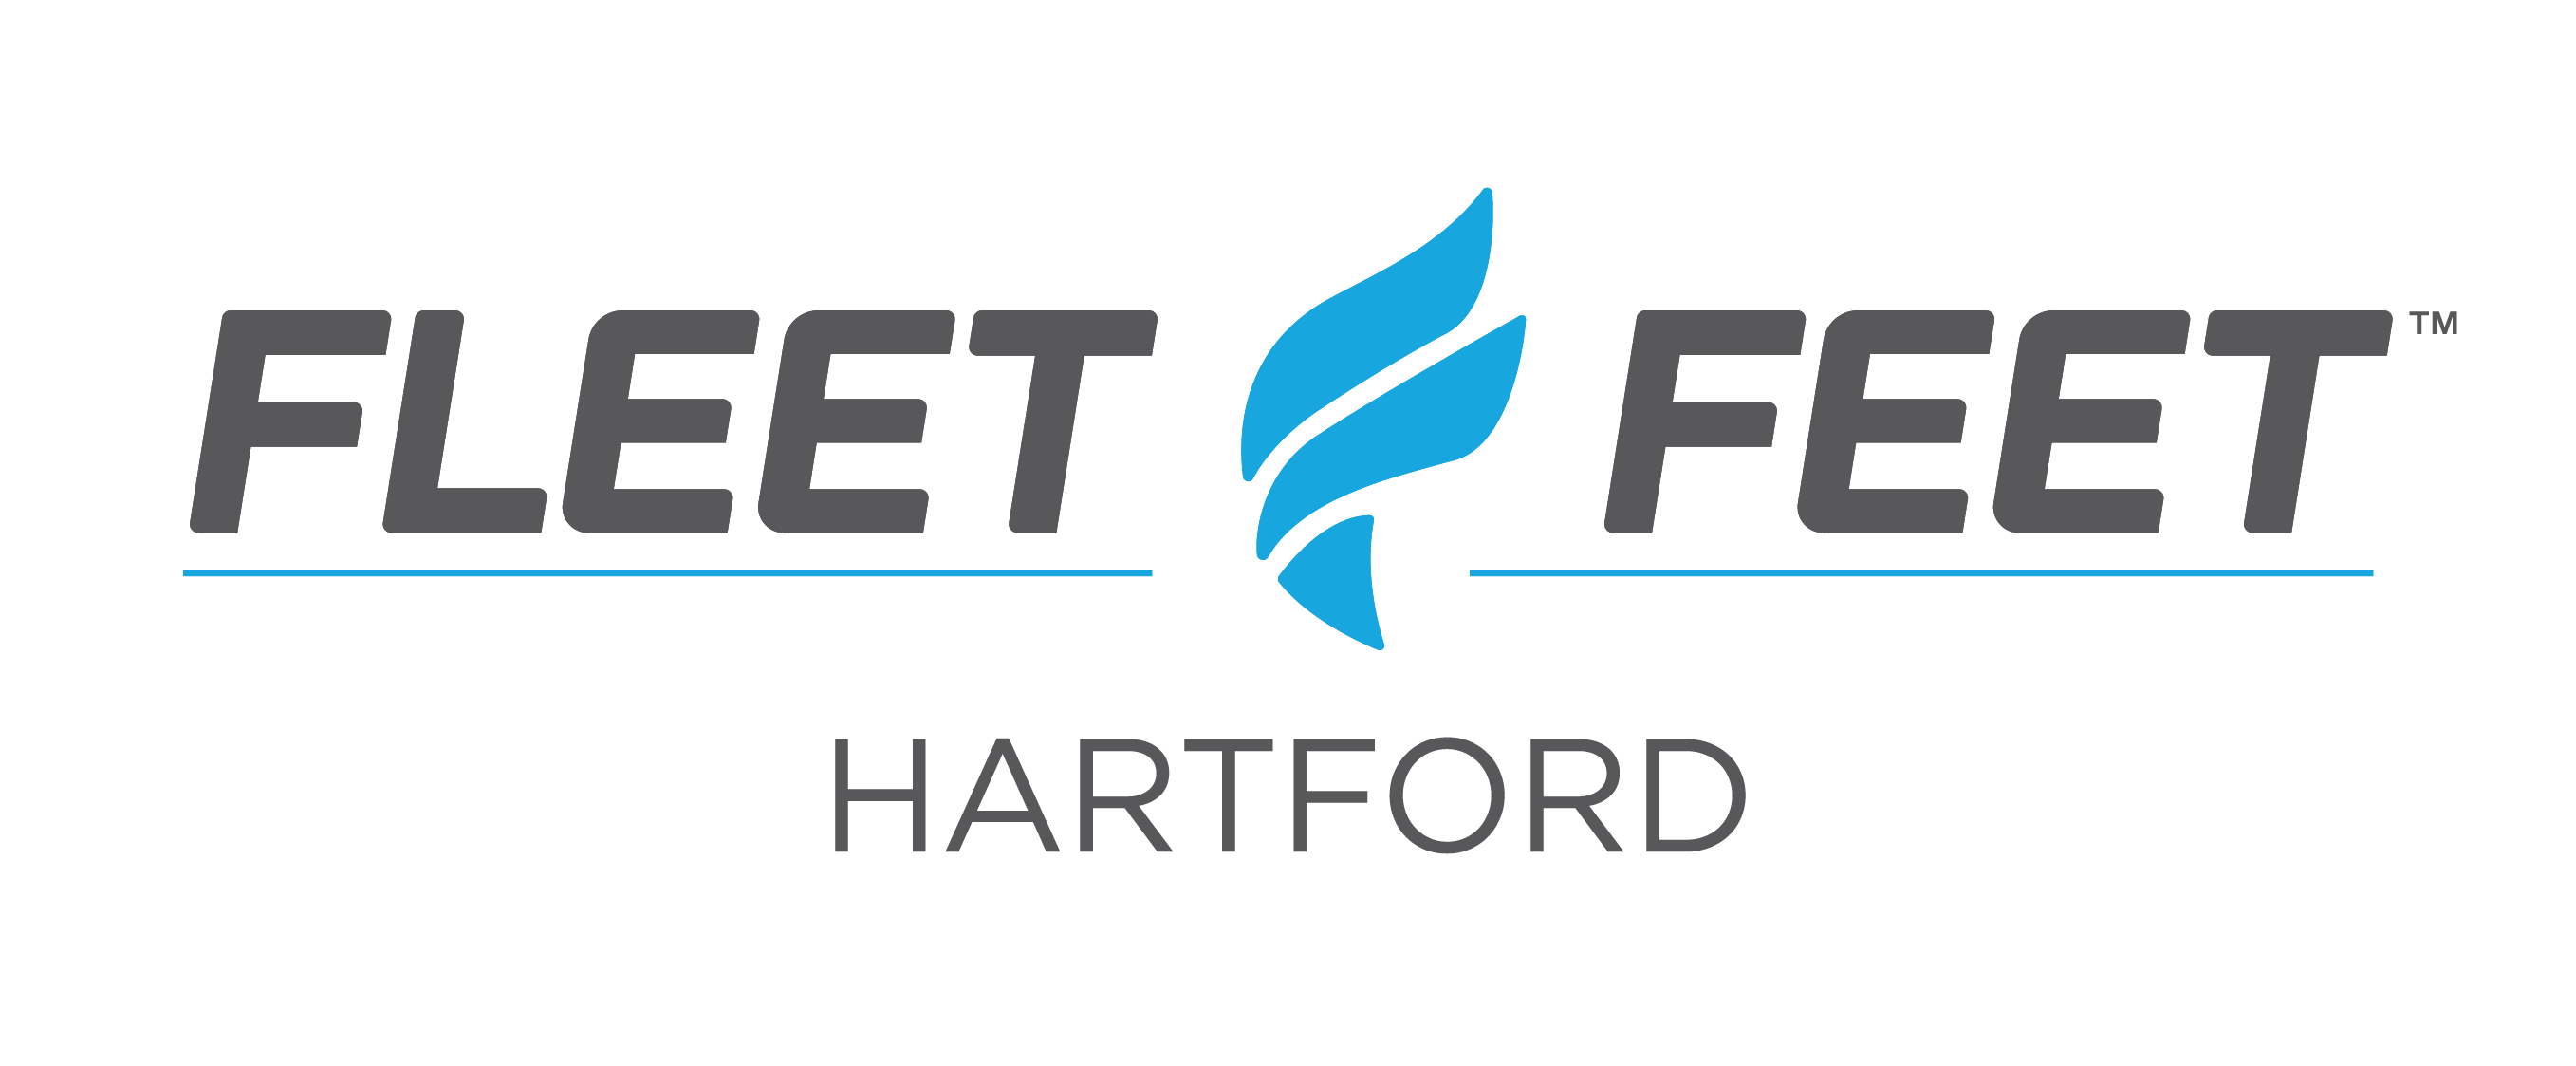 Fleet Feet West Hartford Logo